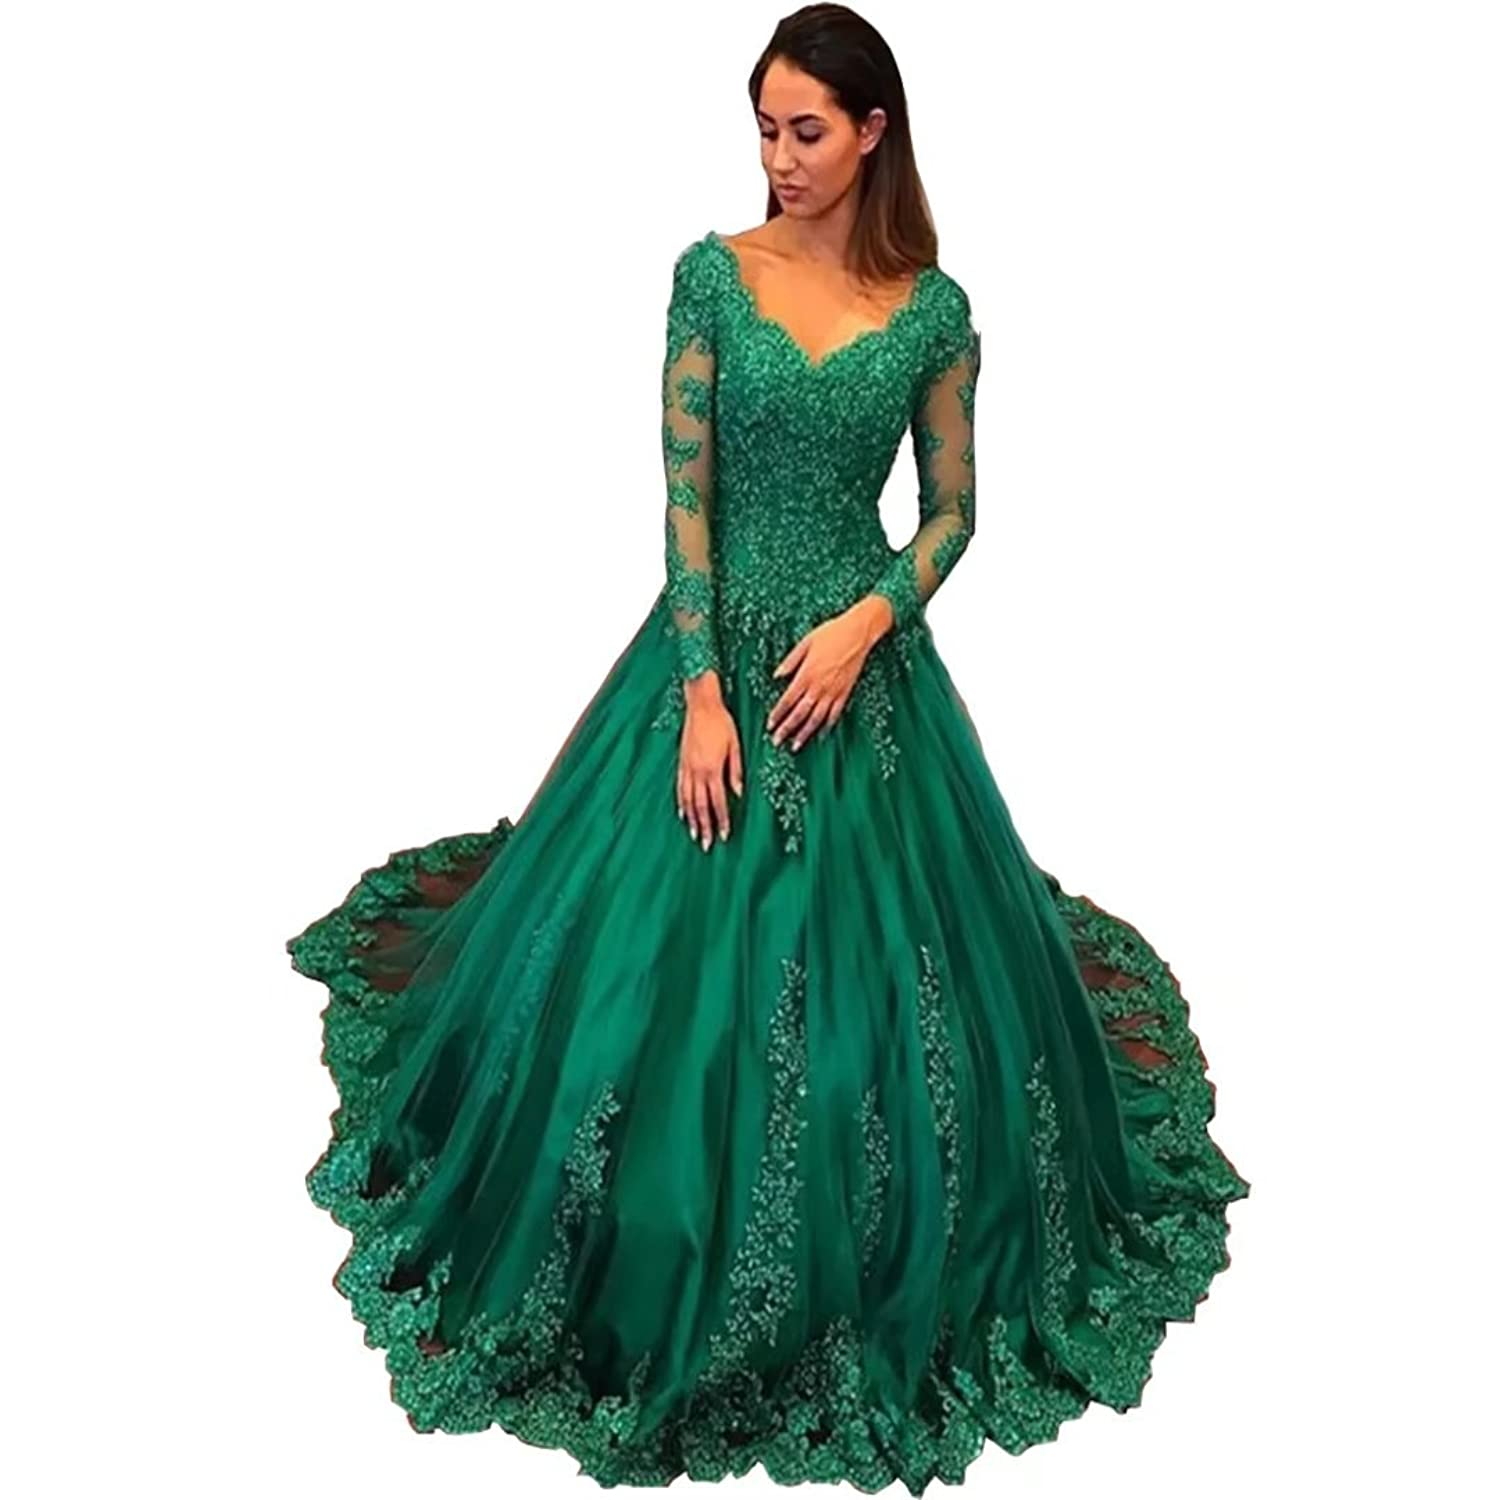 Chady Elegant Plus Size Evening Gowns 2017 Emerald Green Ball Gown